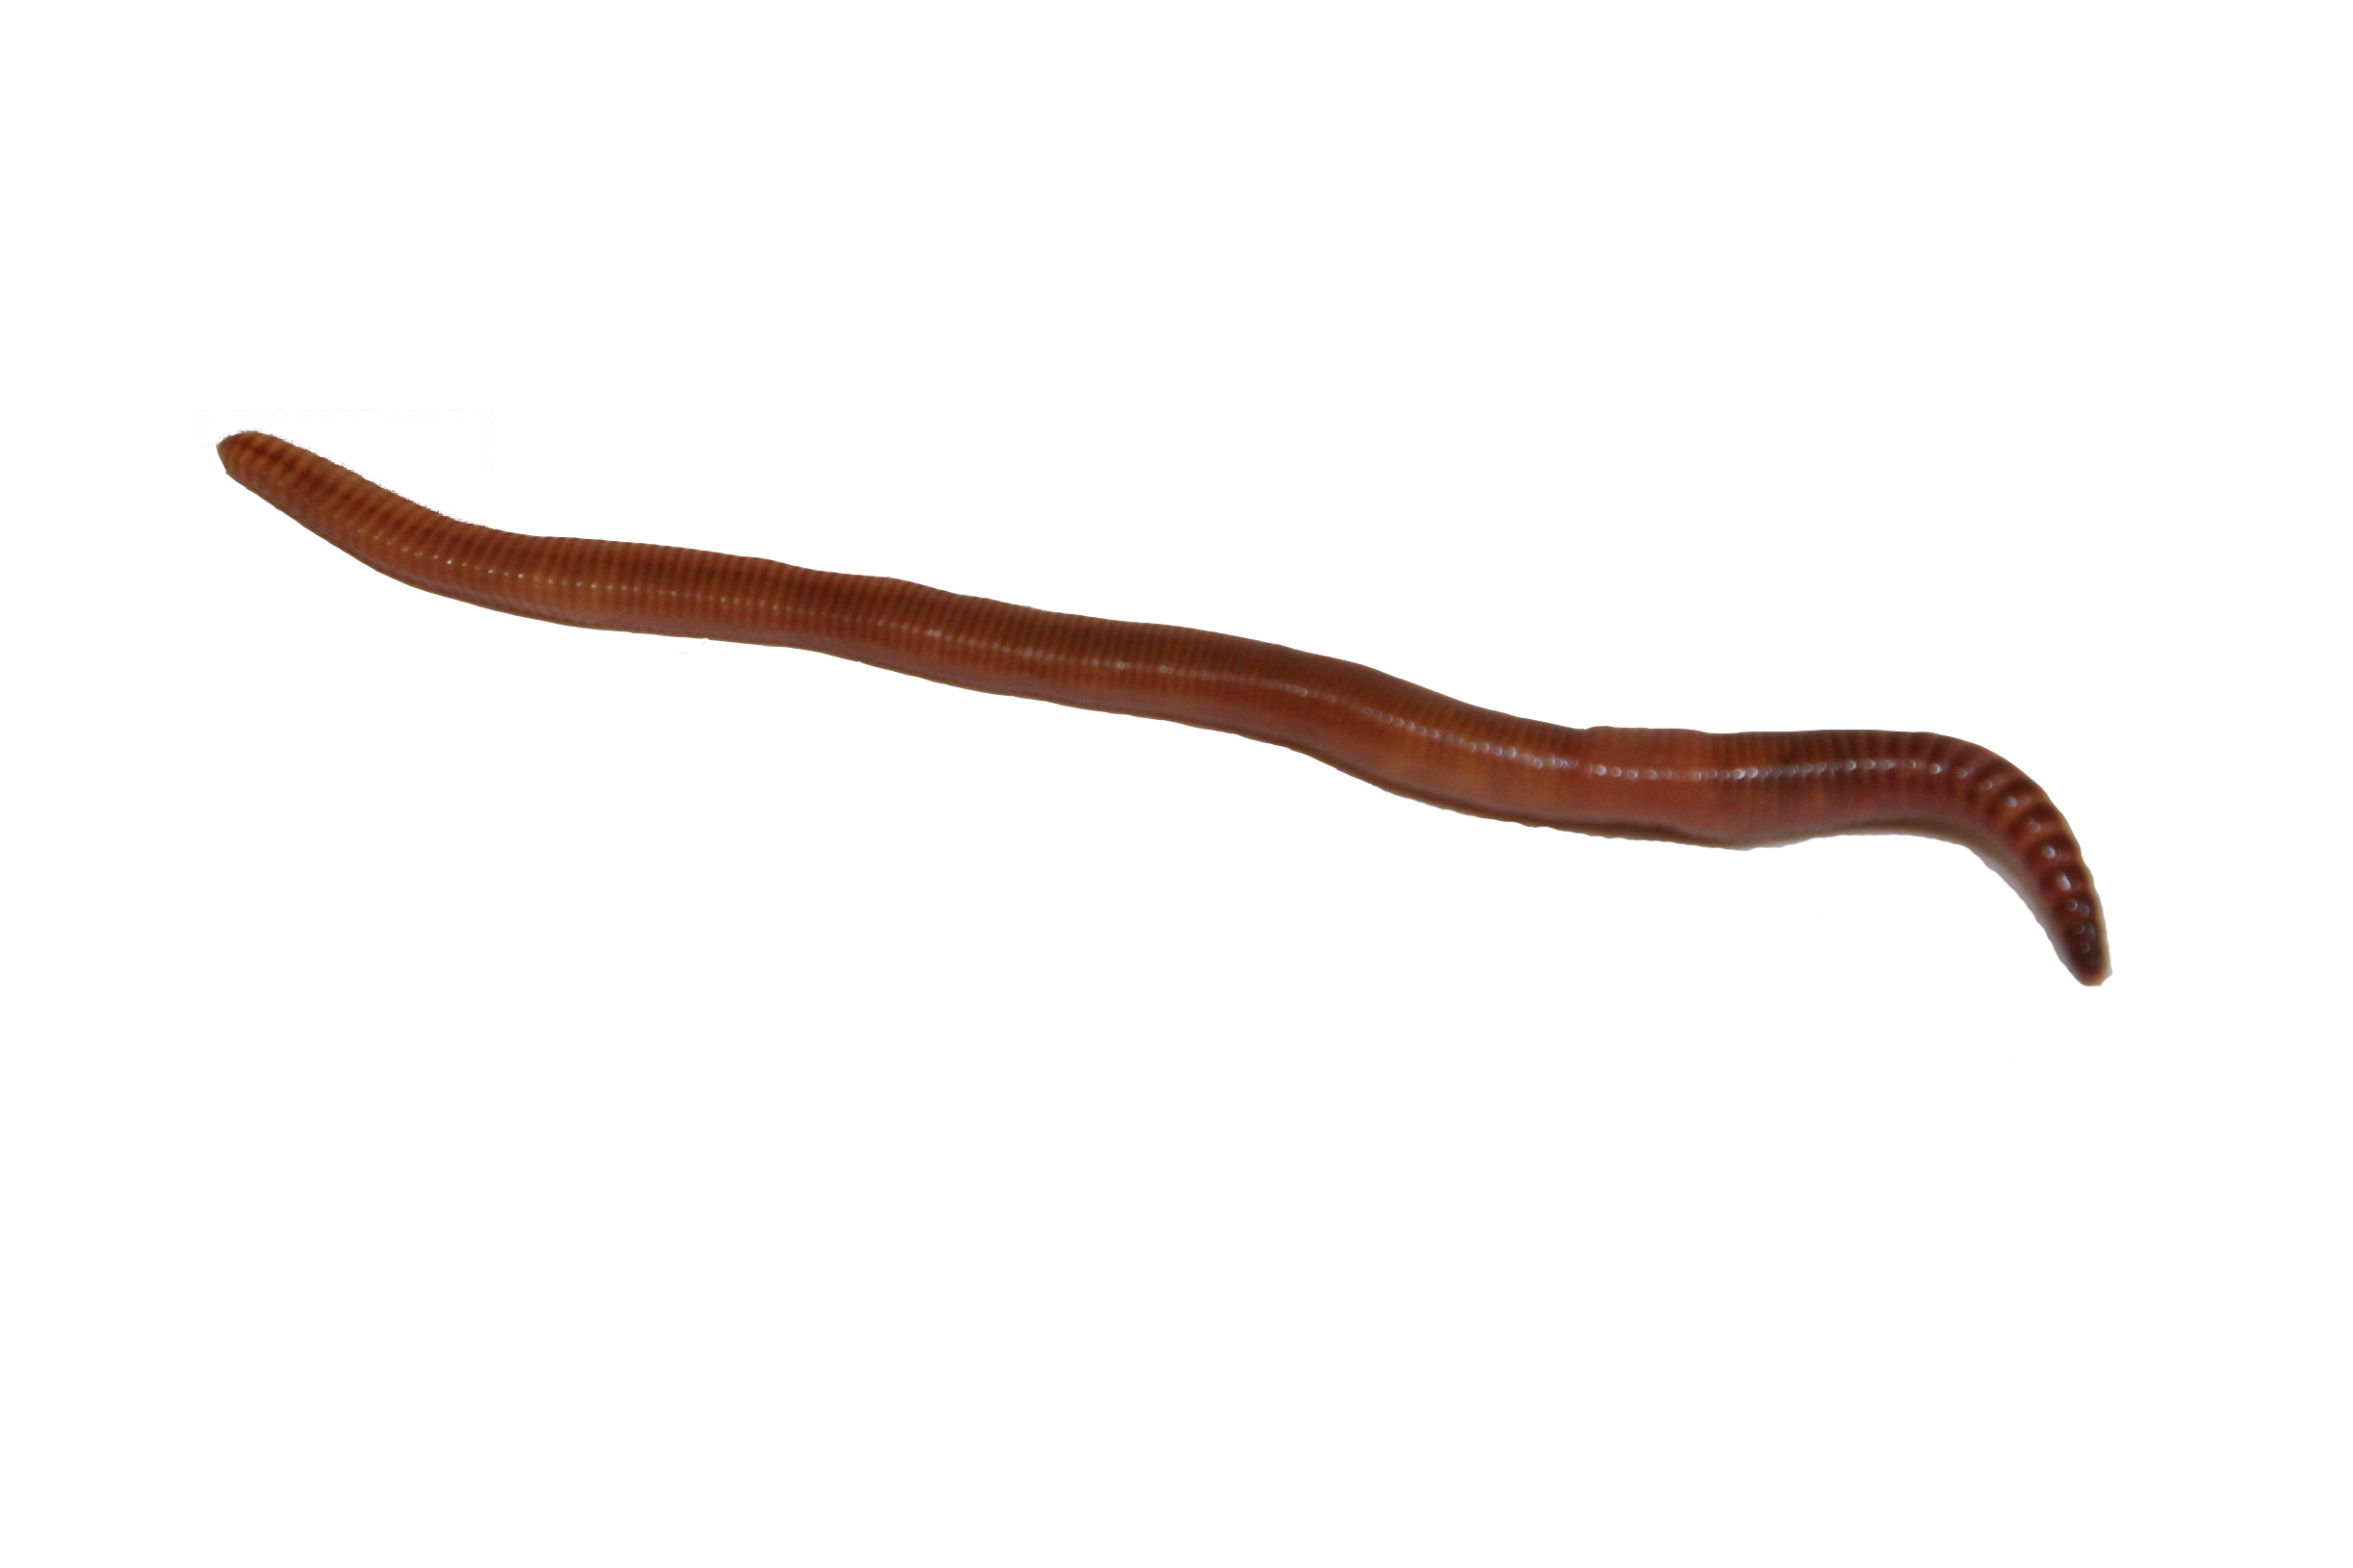 Transparent worm. Earthworm png image with